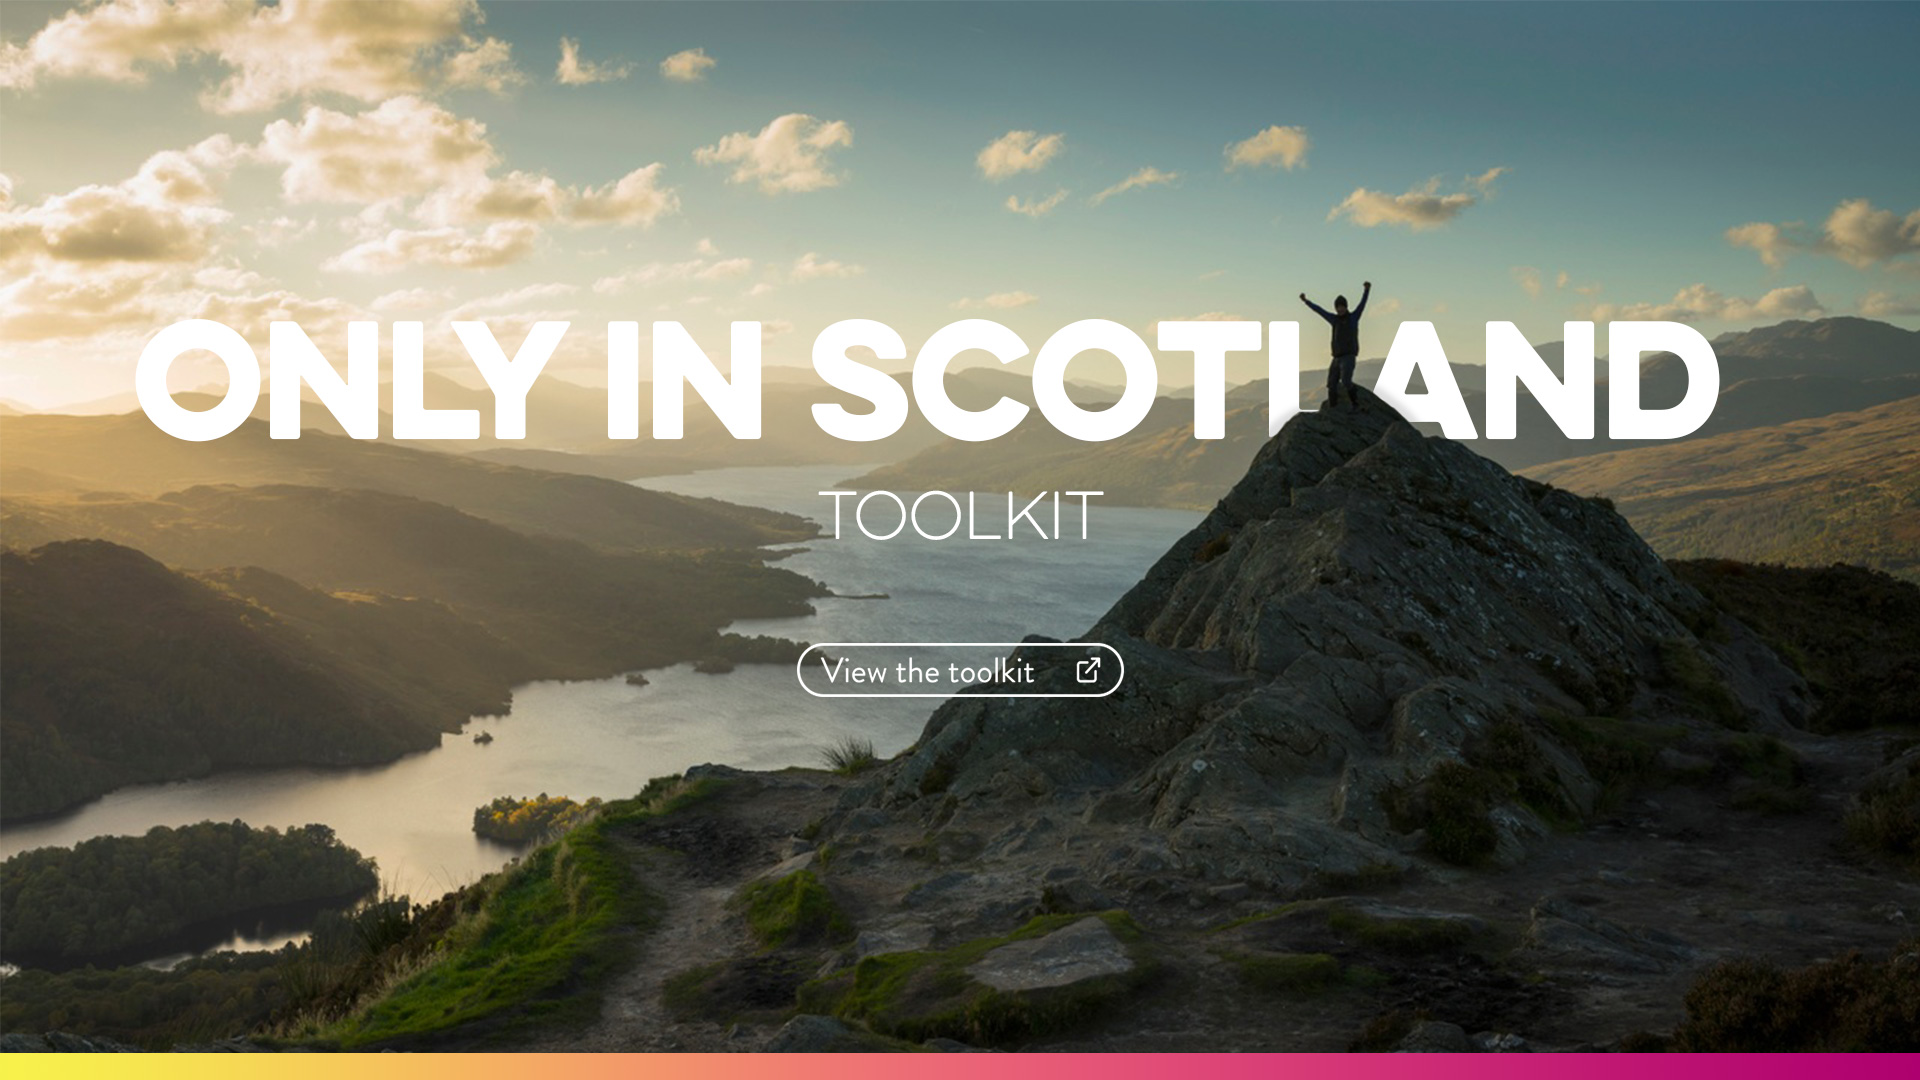 Background of image has a person cheering on top of a mountain looking across a loch as the sun sets. Text on top reads: Only in Scotland/Toolkit and a button is underneath which reads: view toolikit